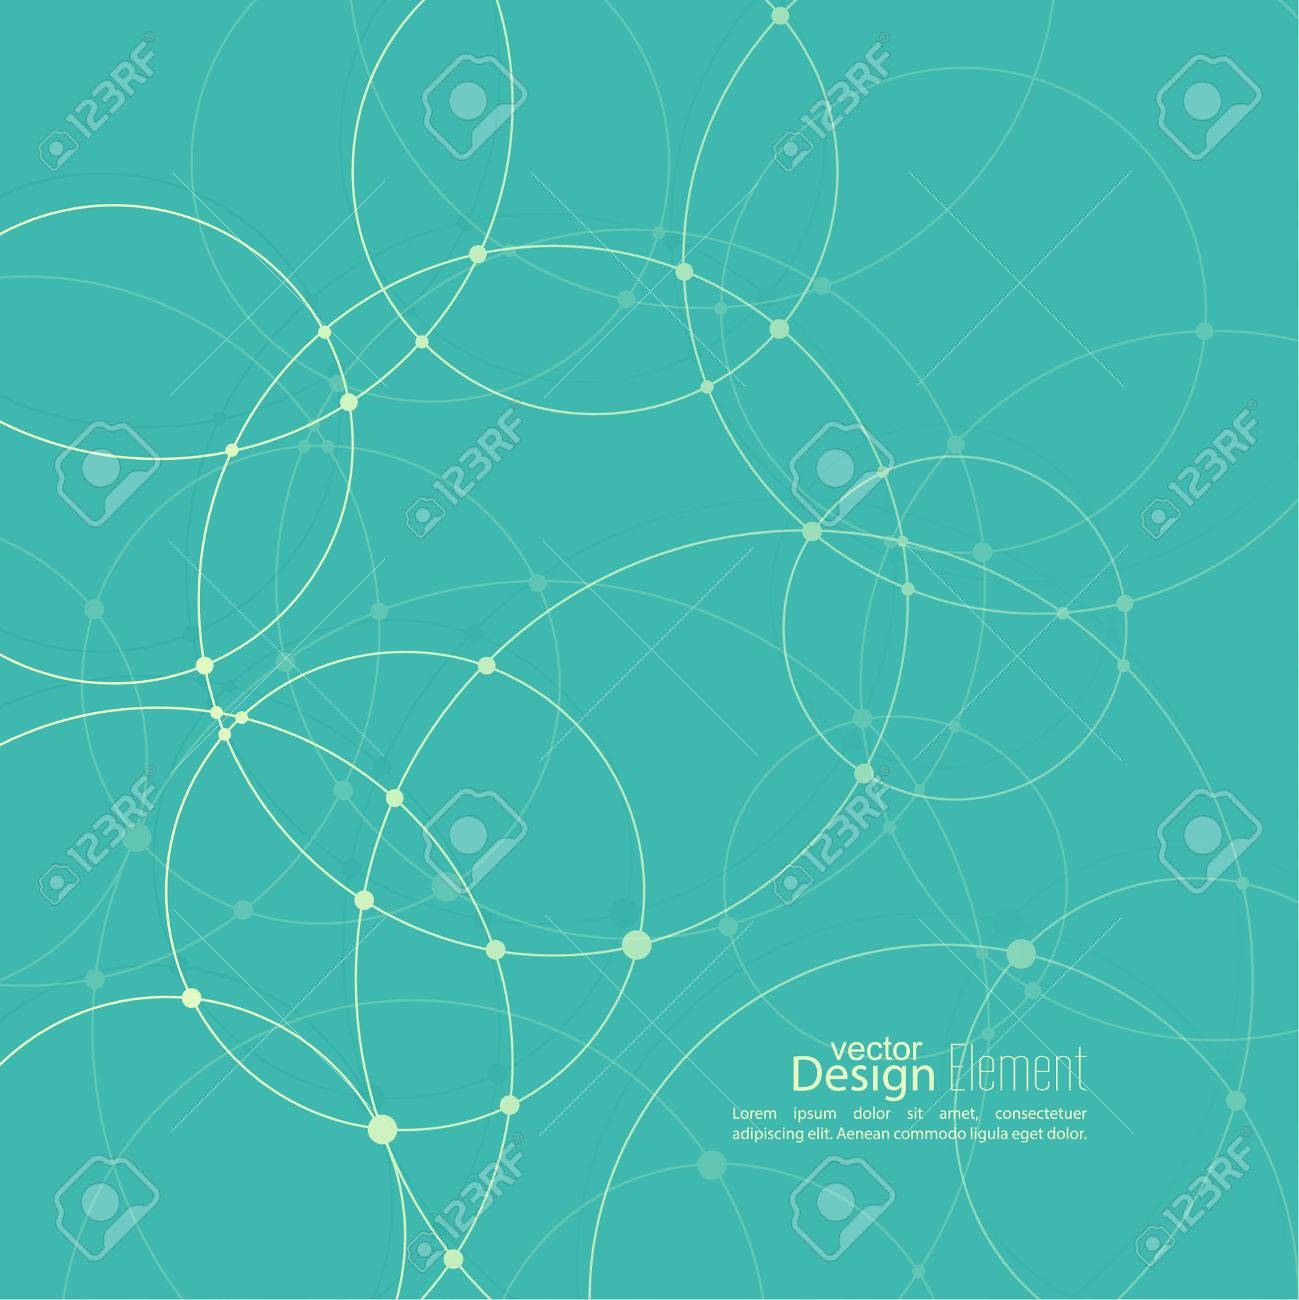 Abstract background with overlapping circles and dots. Chaotic motion. - 45655117